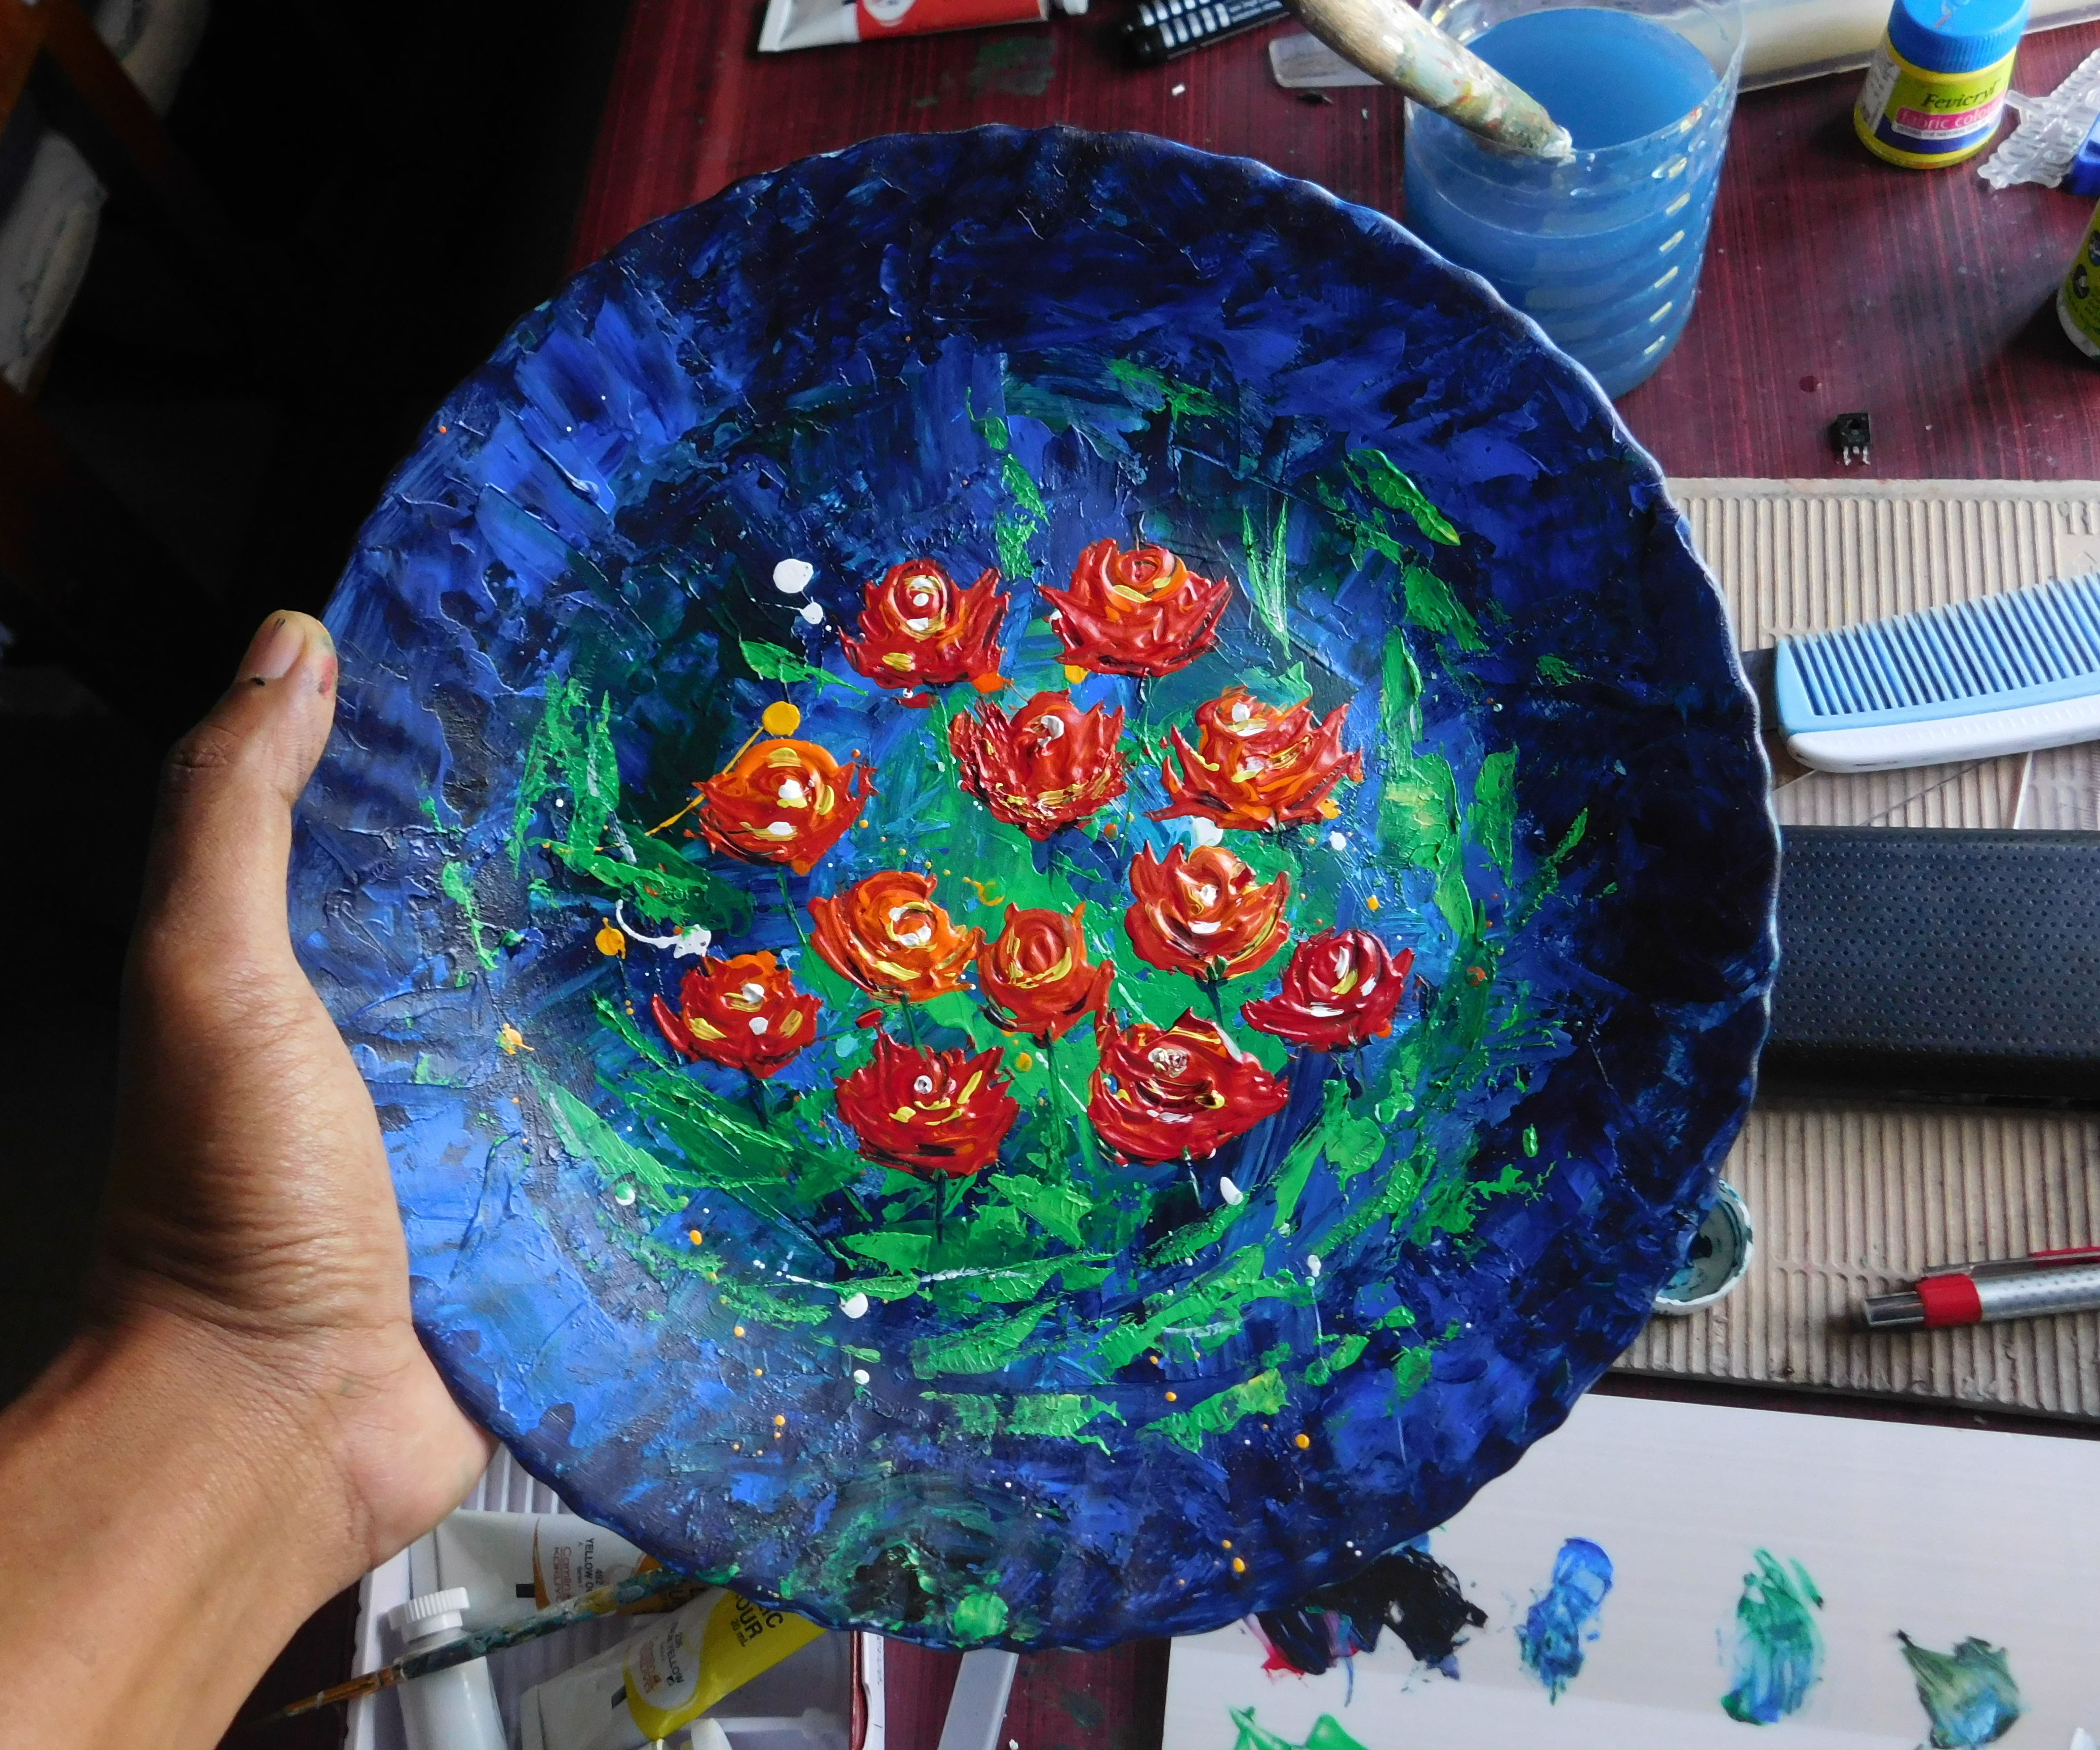 Abstract Flower Painting on Broken Ceramic Plate